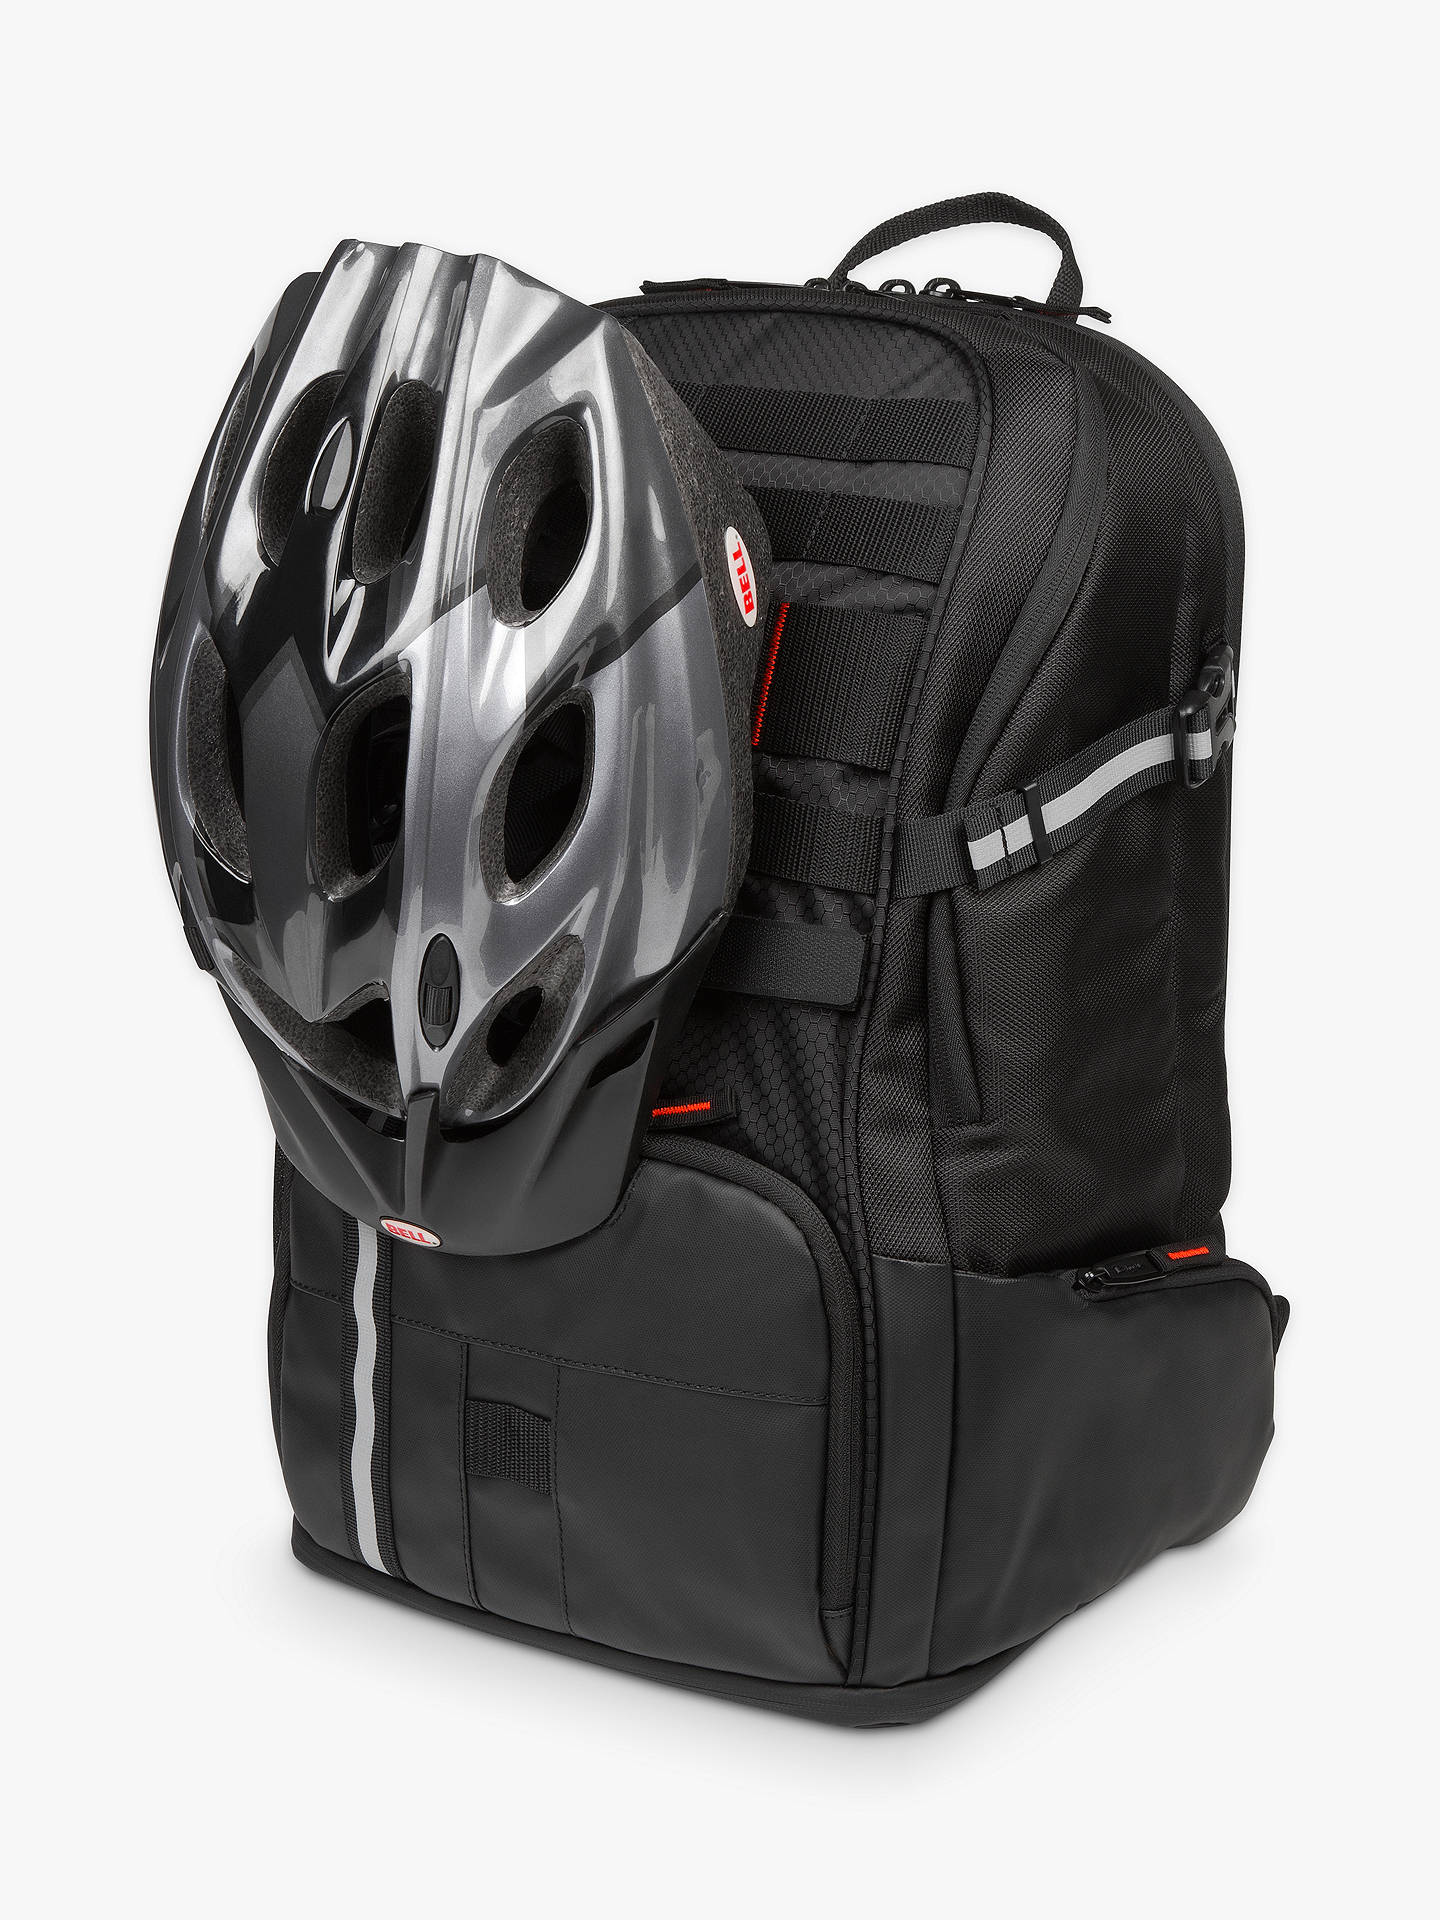 Good Backpack For Cycling To Work- Fenix Toulouse Handball bf2a87788f209